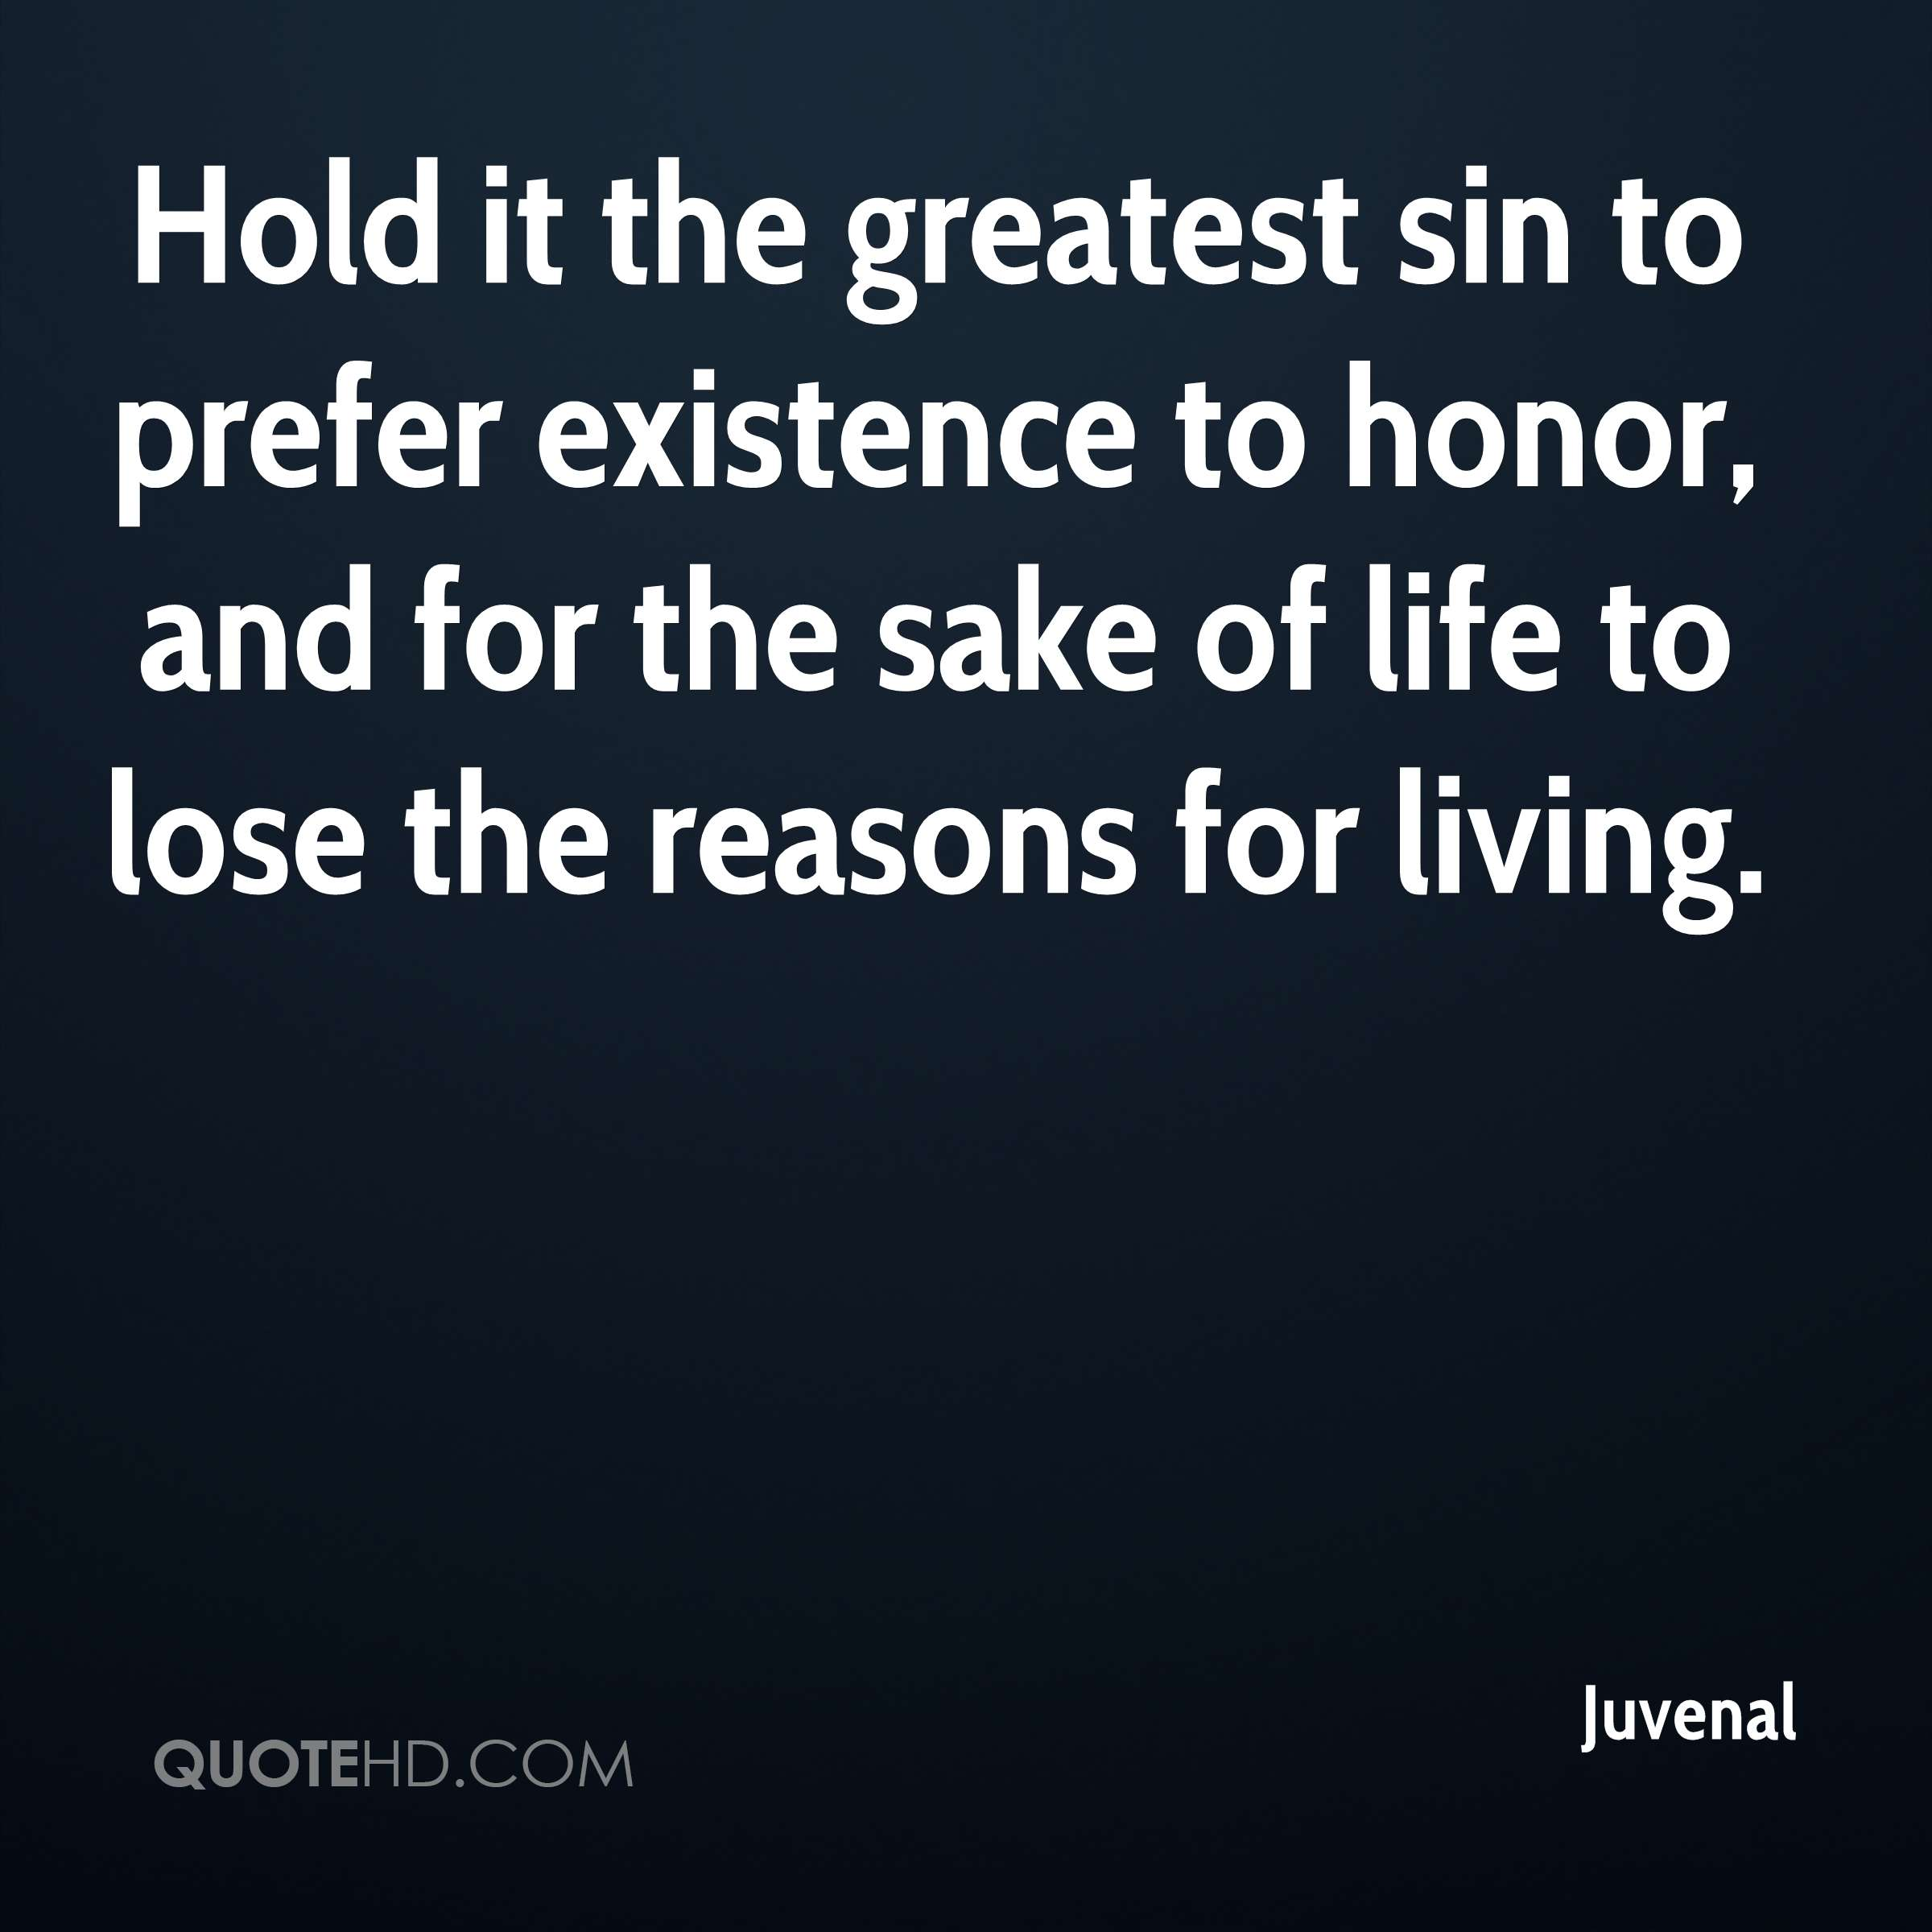 Hold it the greatest sin to prefer existence to honor, and for the sake of life to lose the reasons for living.